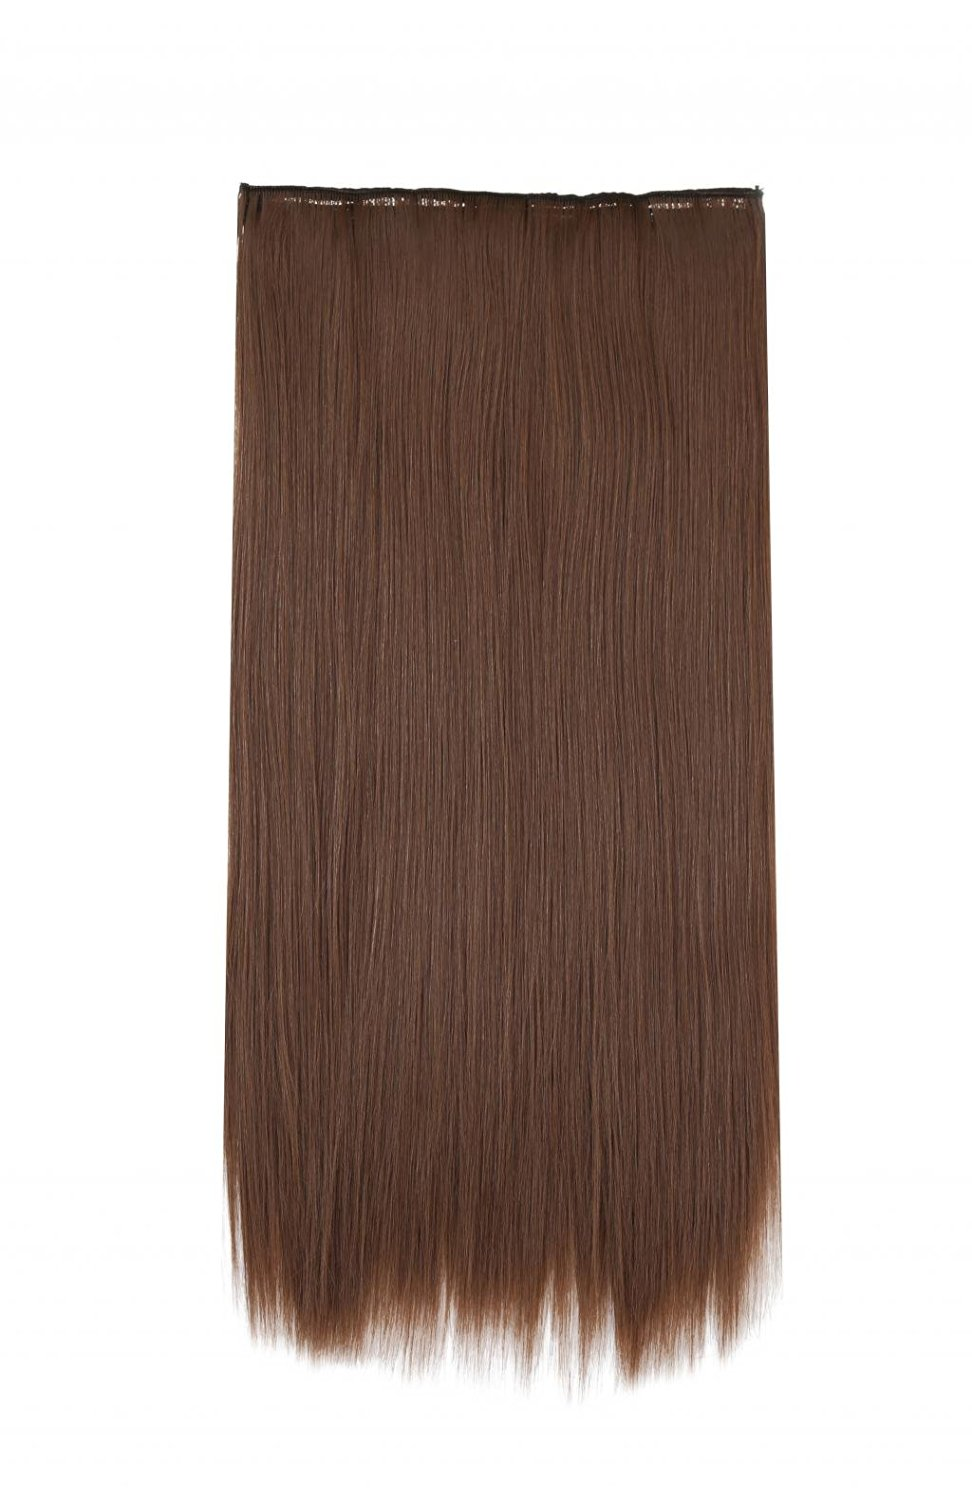 LOUISE MAELYS One Piece Long Straight Hair Extension Wavy Wig 5 Clips Hairpiece Brown